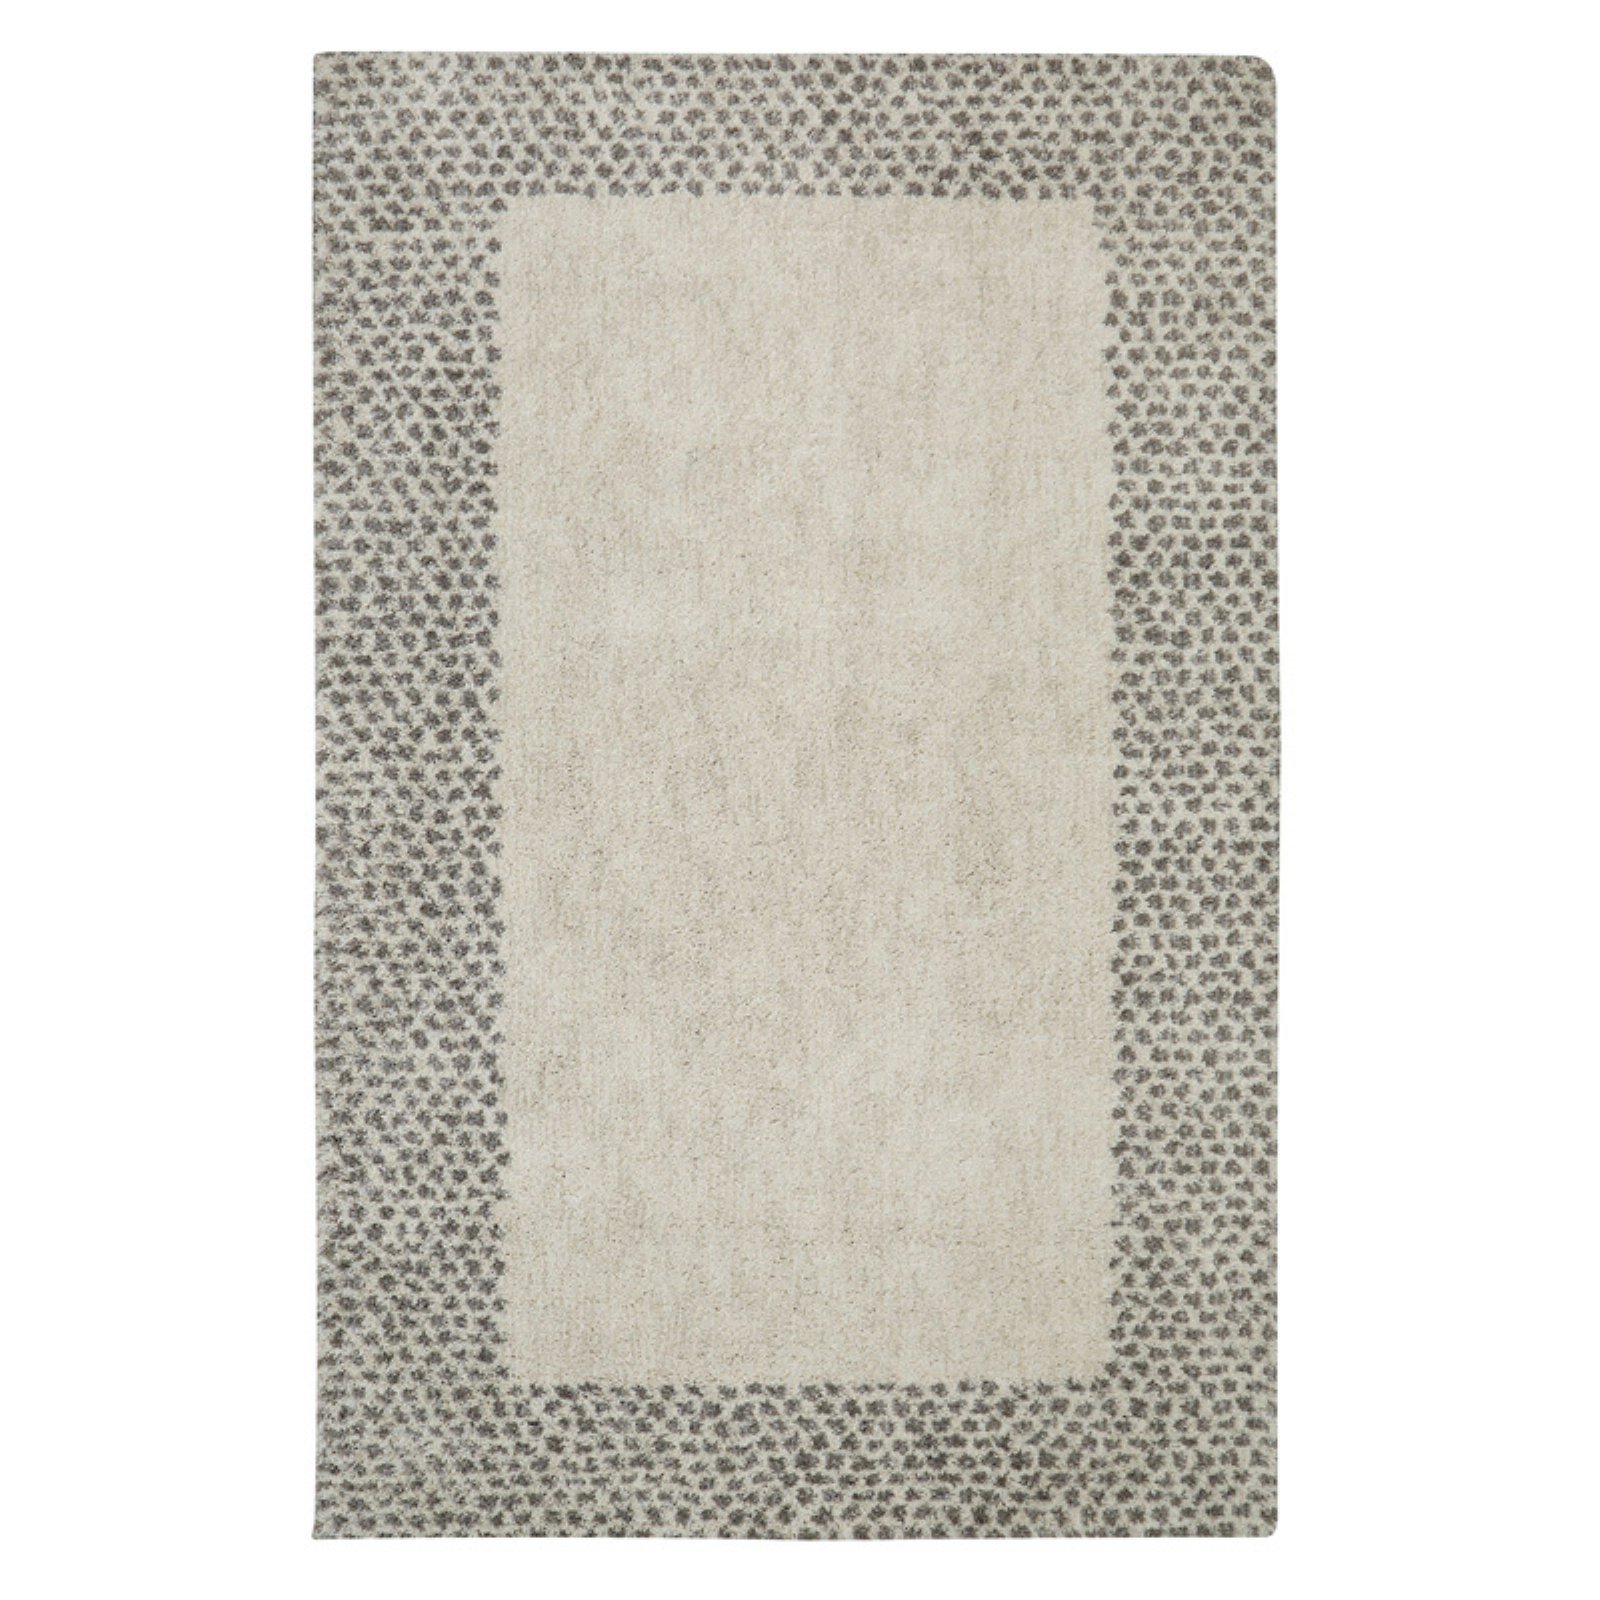 Mohawk Home Spotted Border Area Rug